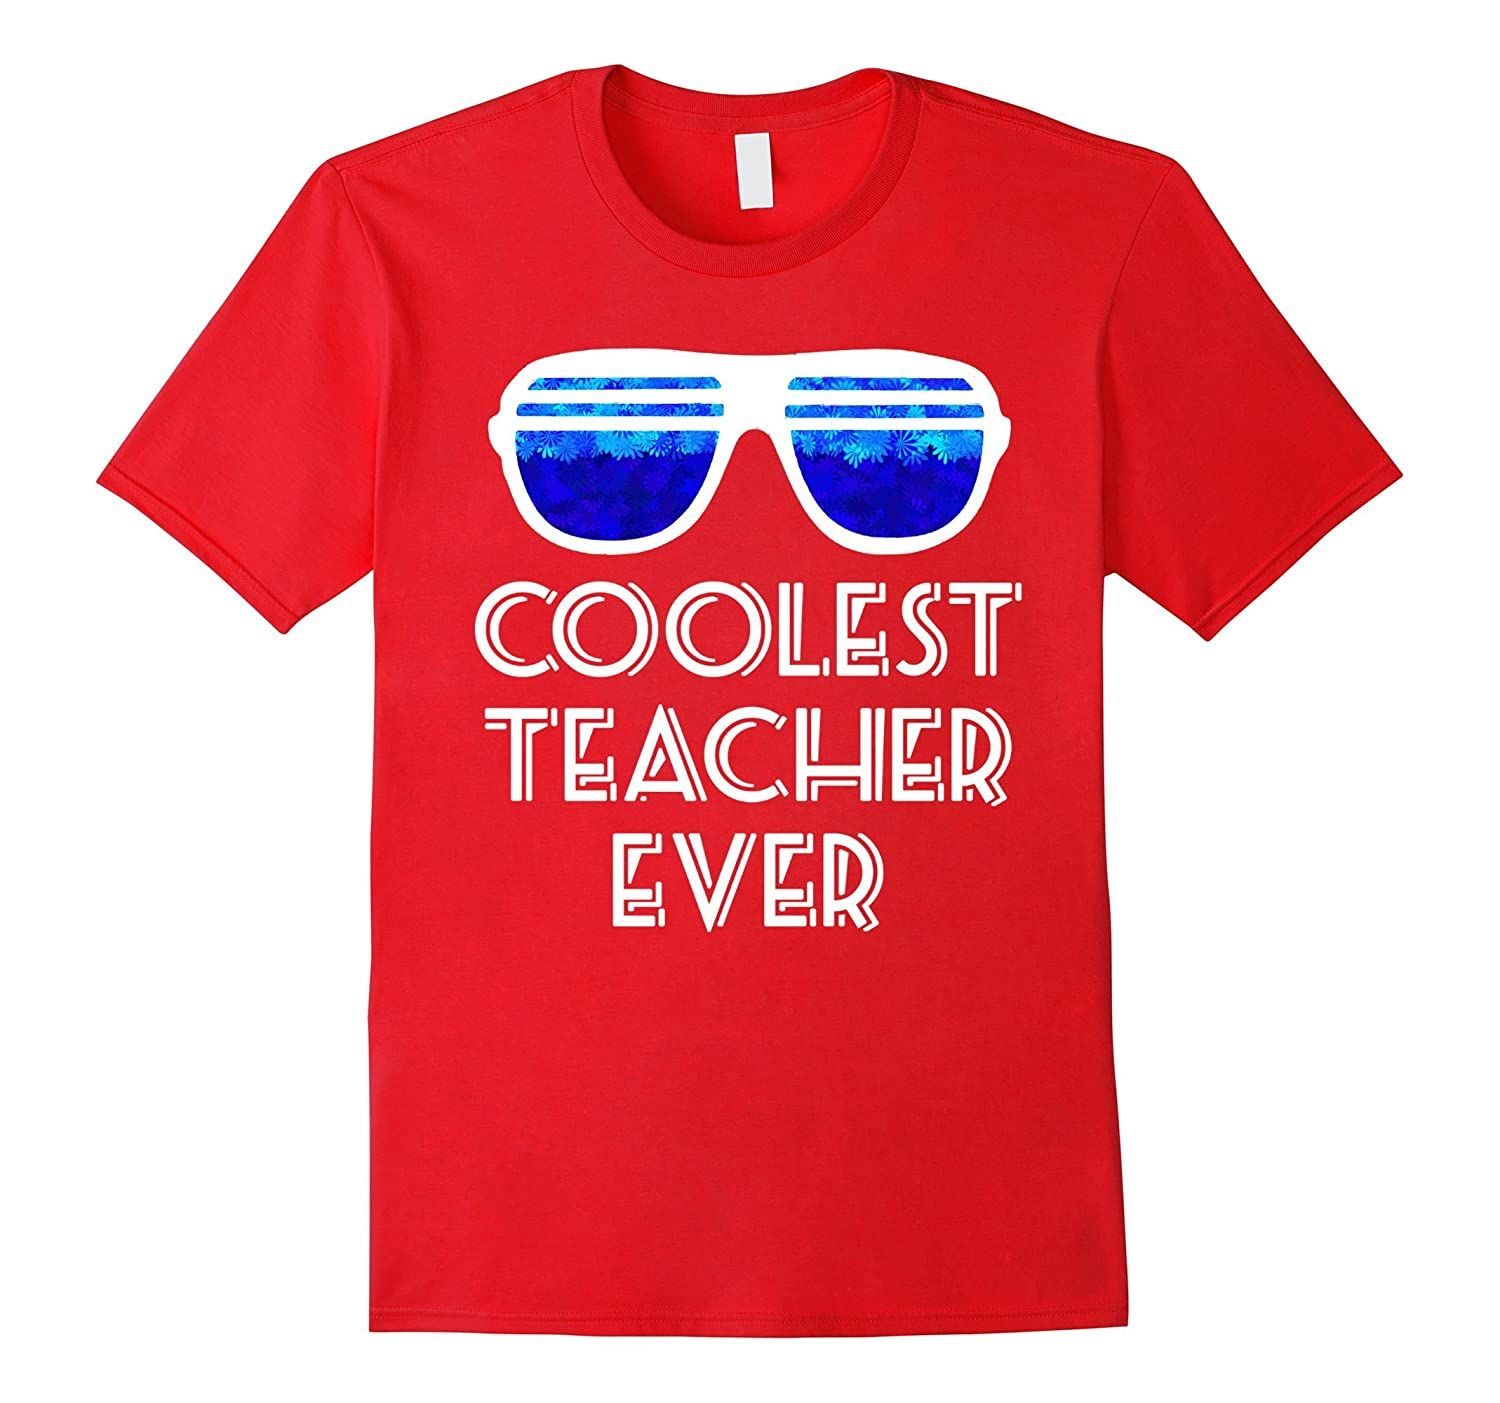 Totally COOLEST TEACHER EVER shirt (Gift for teachers teach)